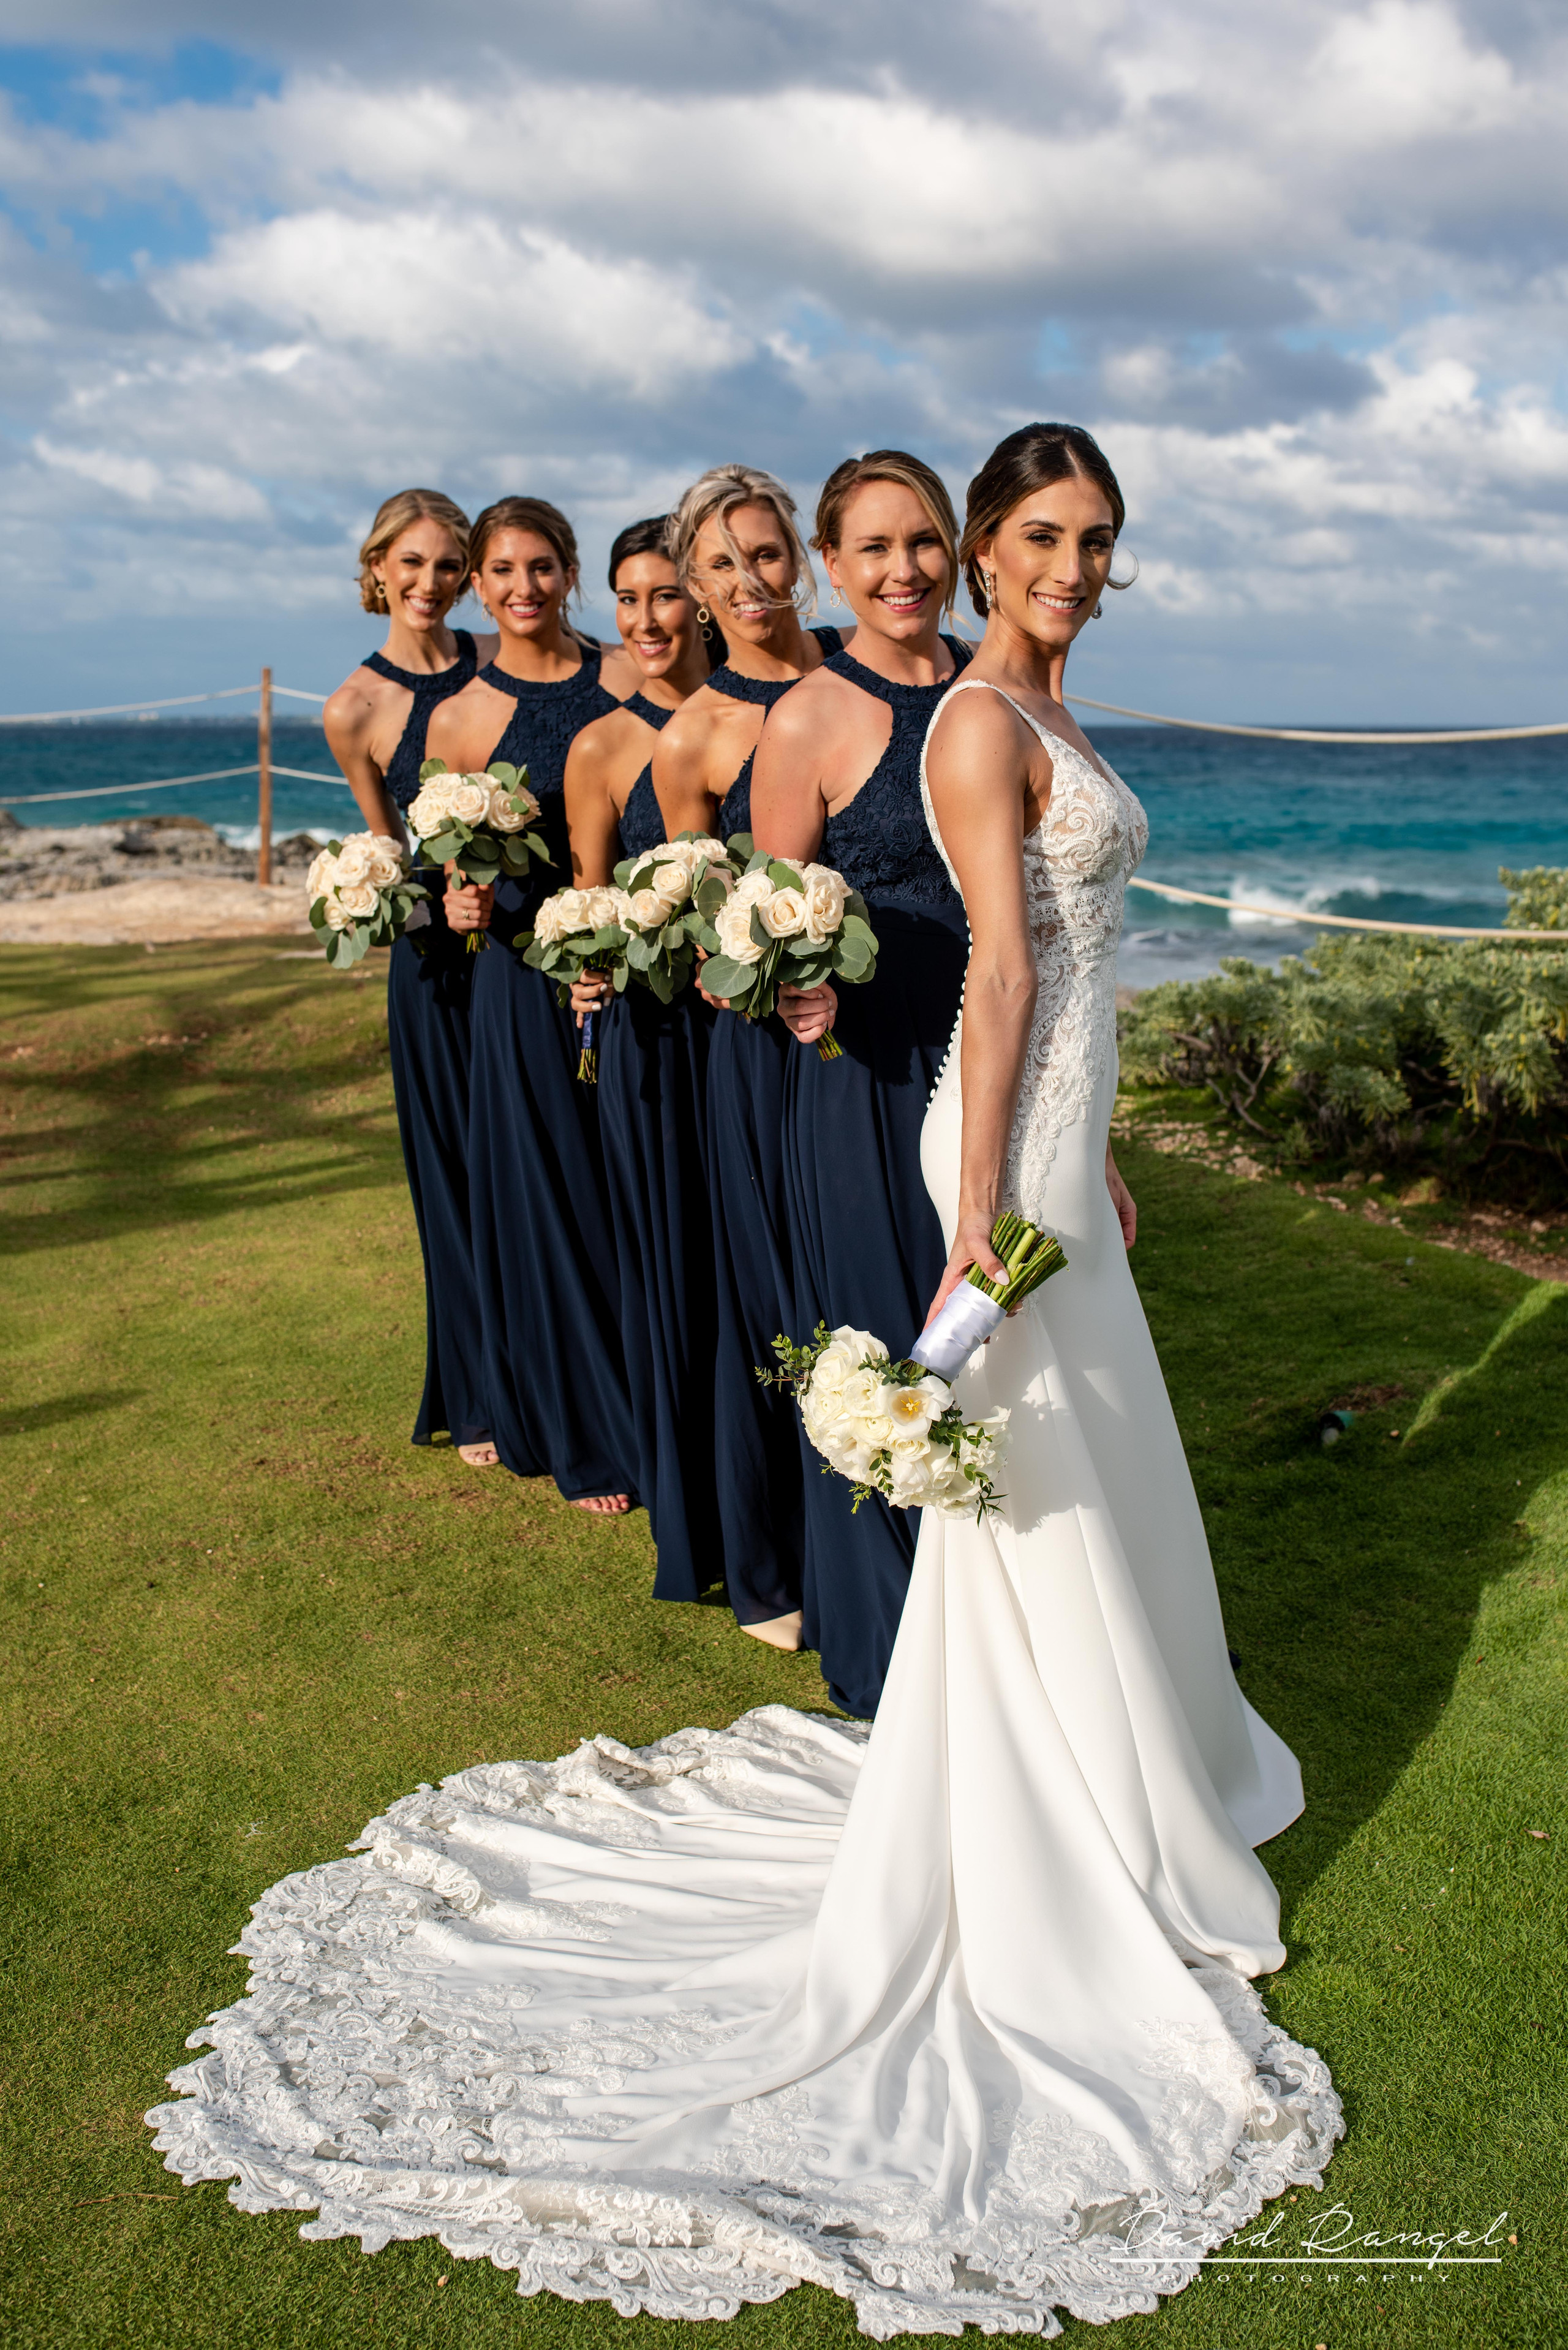 bridesmaids+happy+bouquet+flowers+gazebo+photo